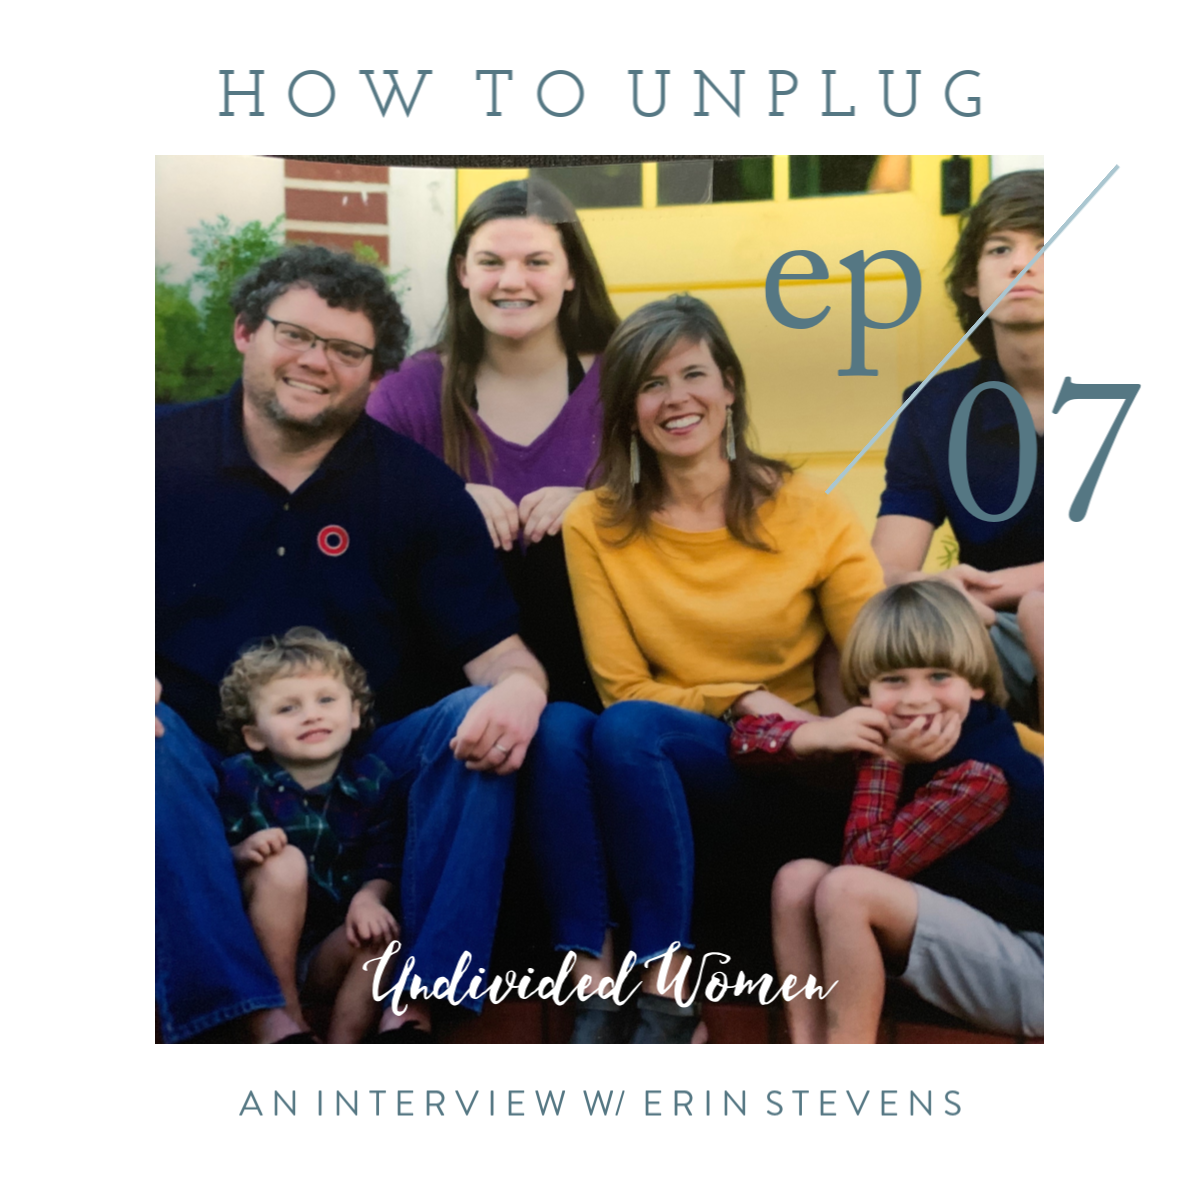 How to Unplug ep 07.png